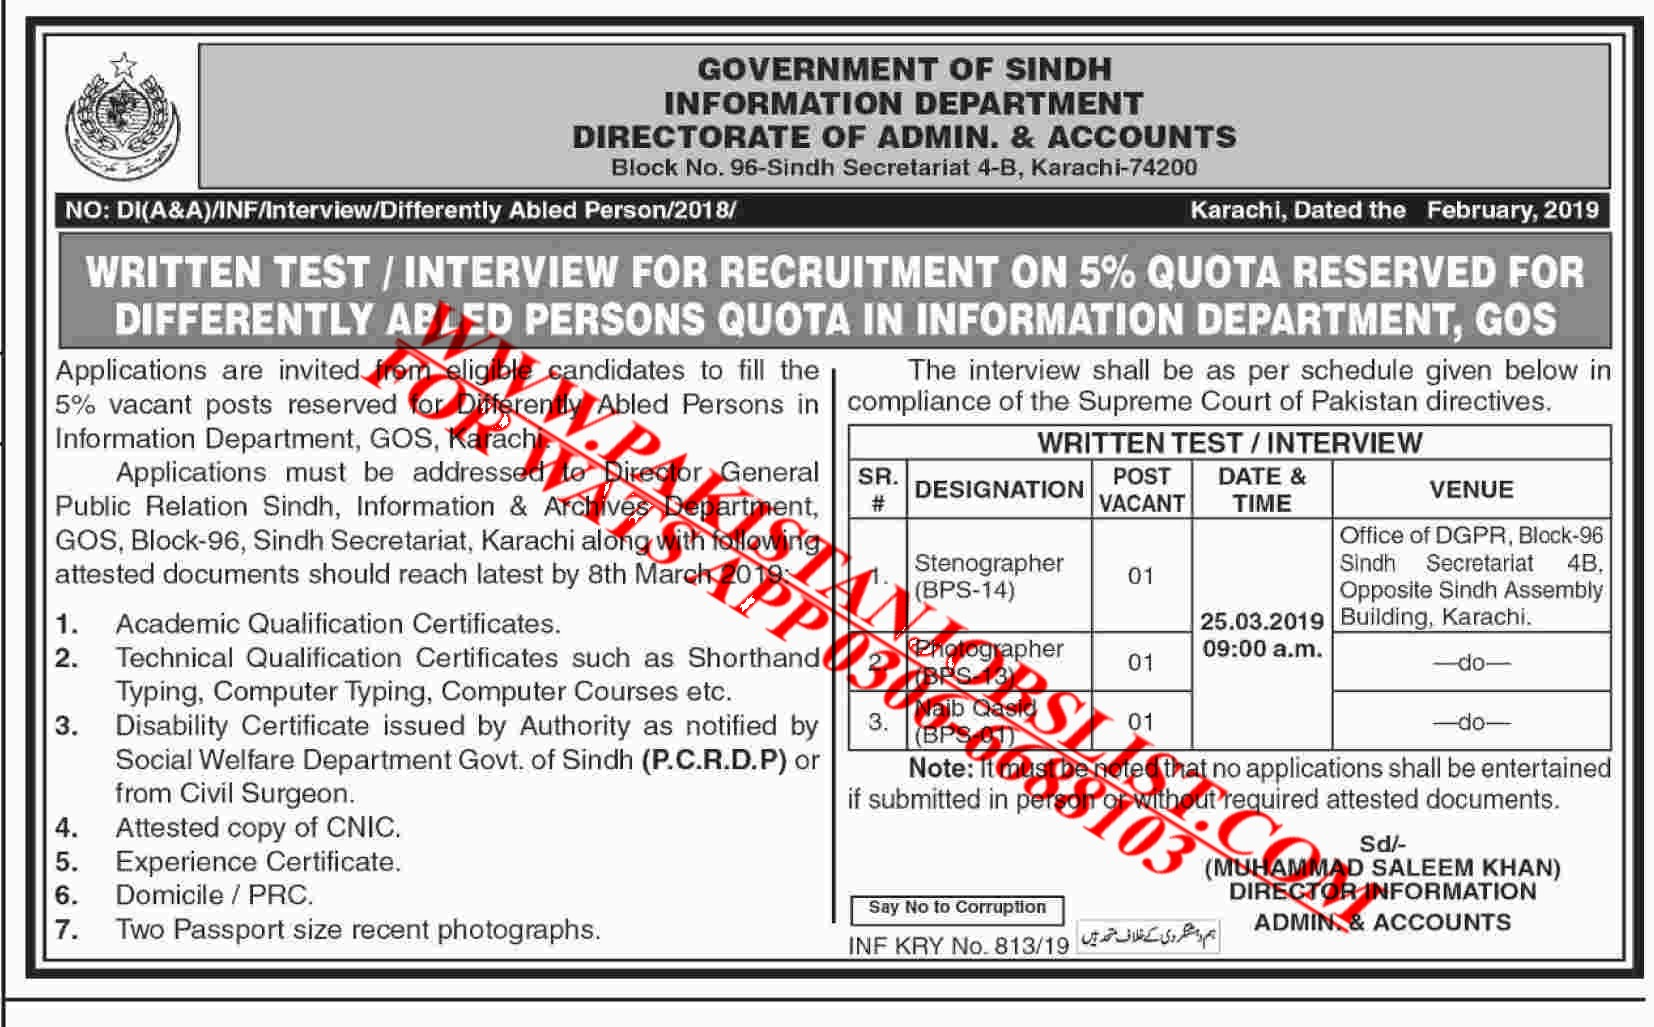 GOVERNMENT OF SINDH INFORMATION DEPARTMENT JOBS OPPORTUNITY ON